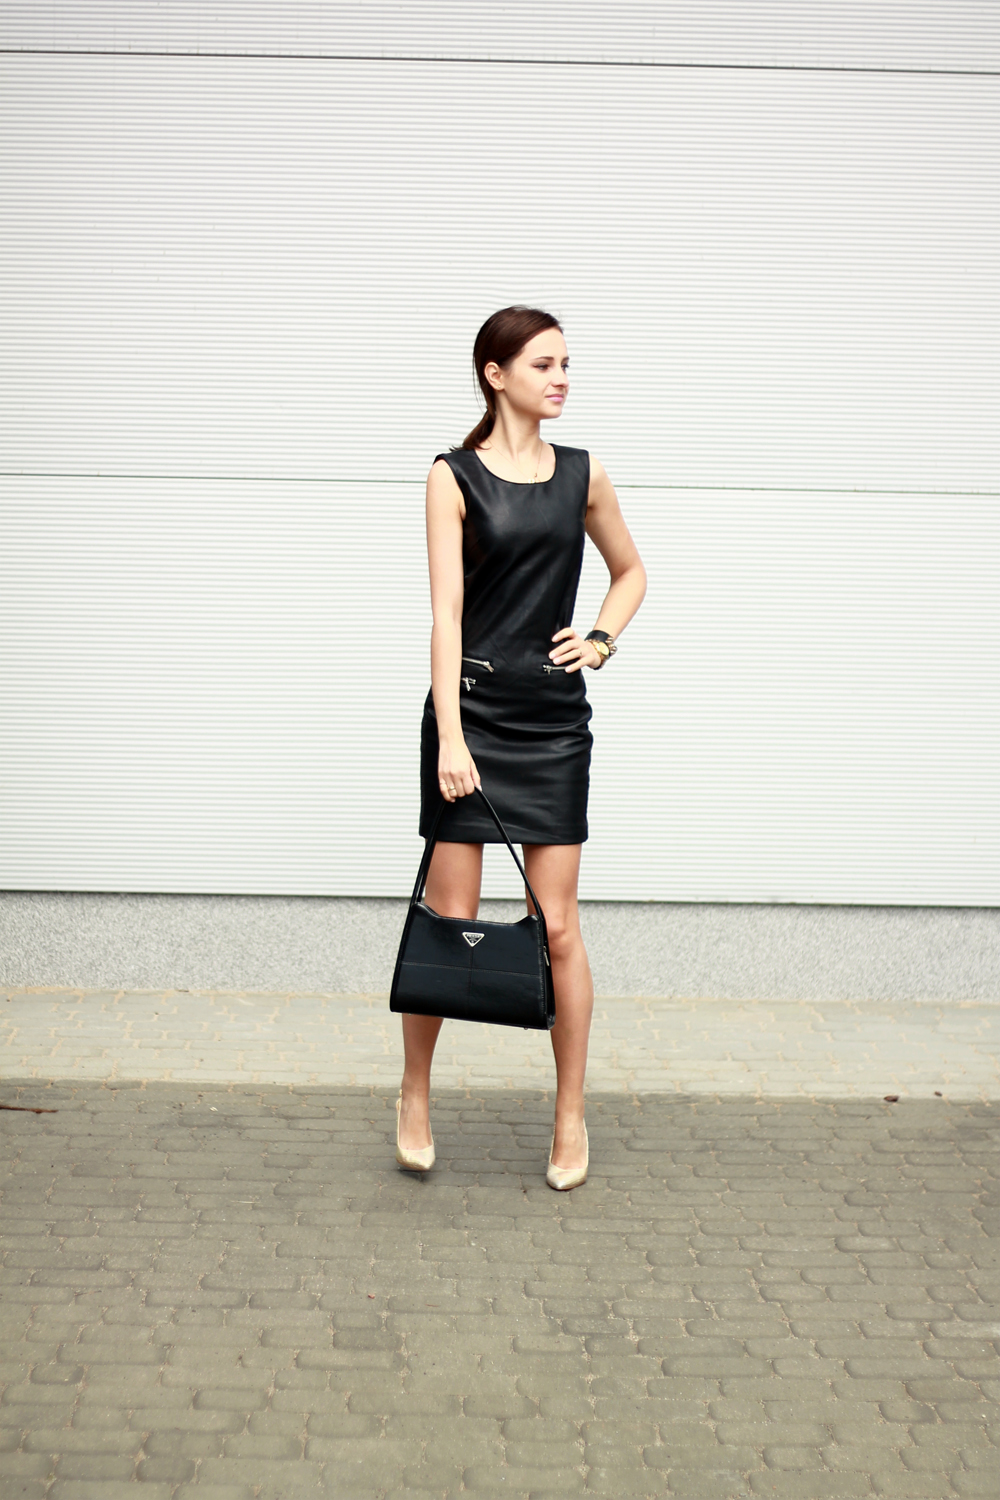 fashion blog street style chic vogue tumblr girl black dress lilicons 6